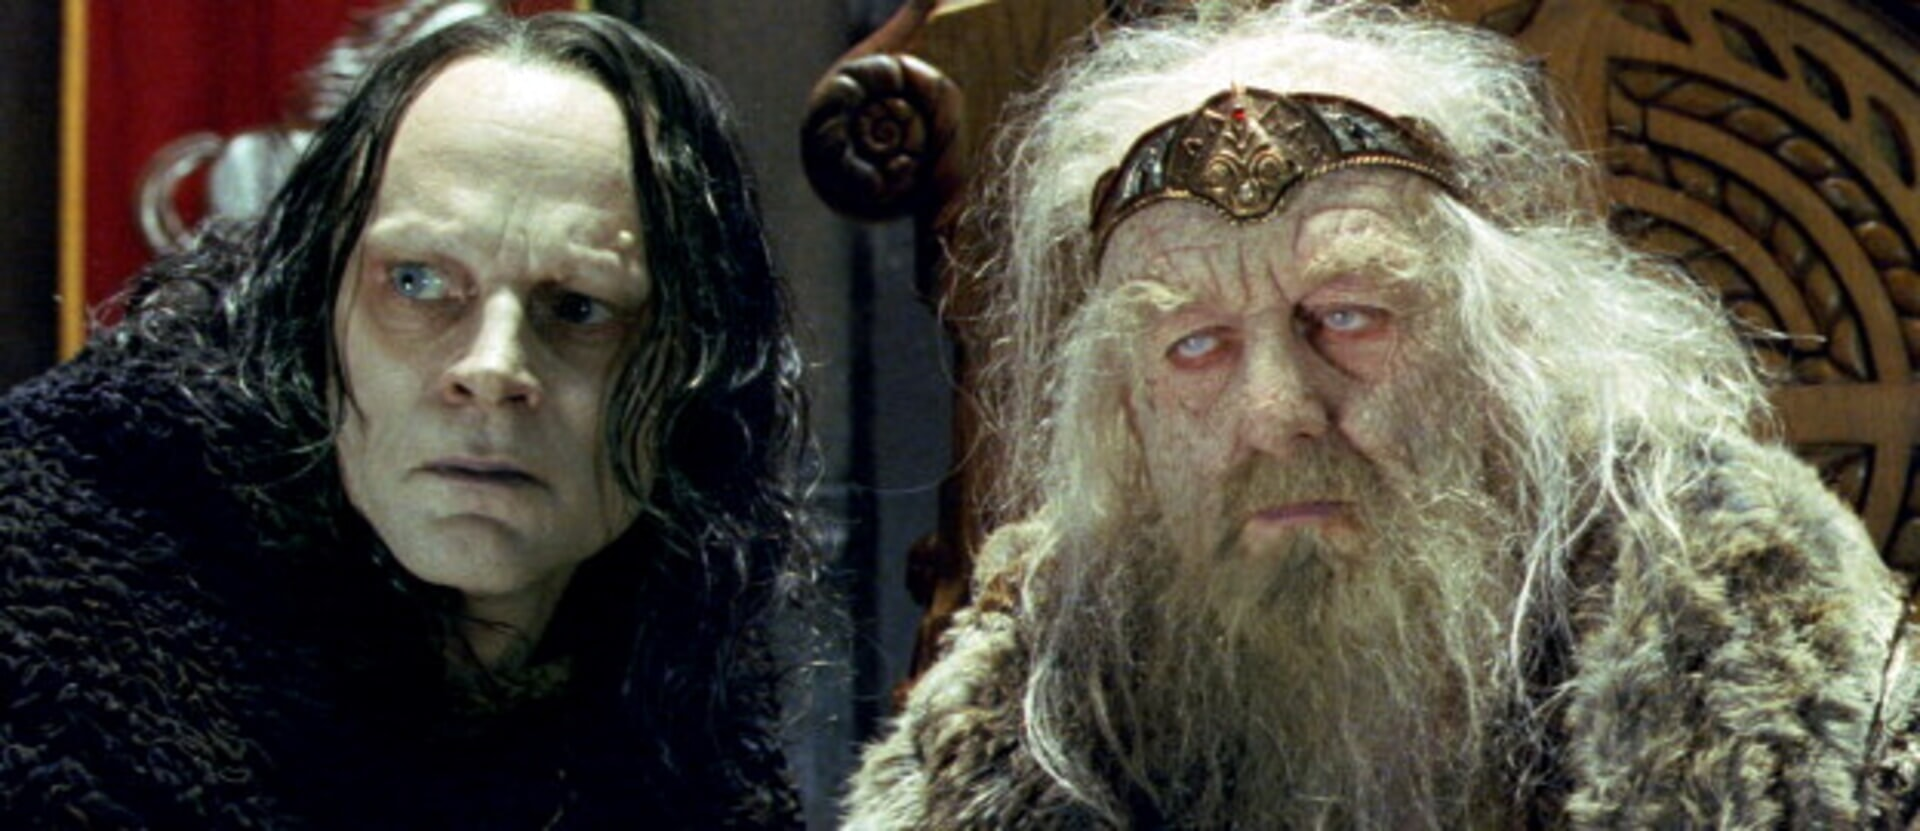 The Lord of the Rings: The Two Towers - Image 7